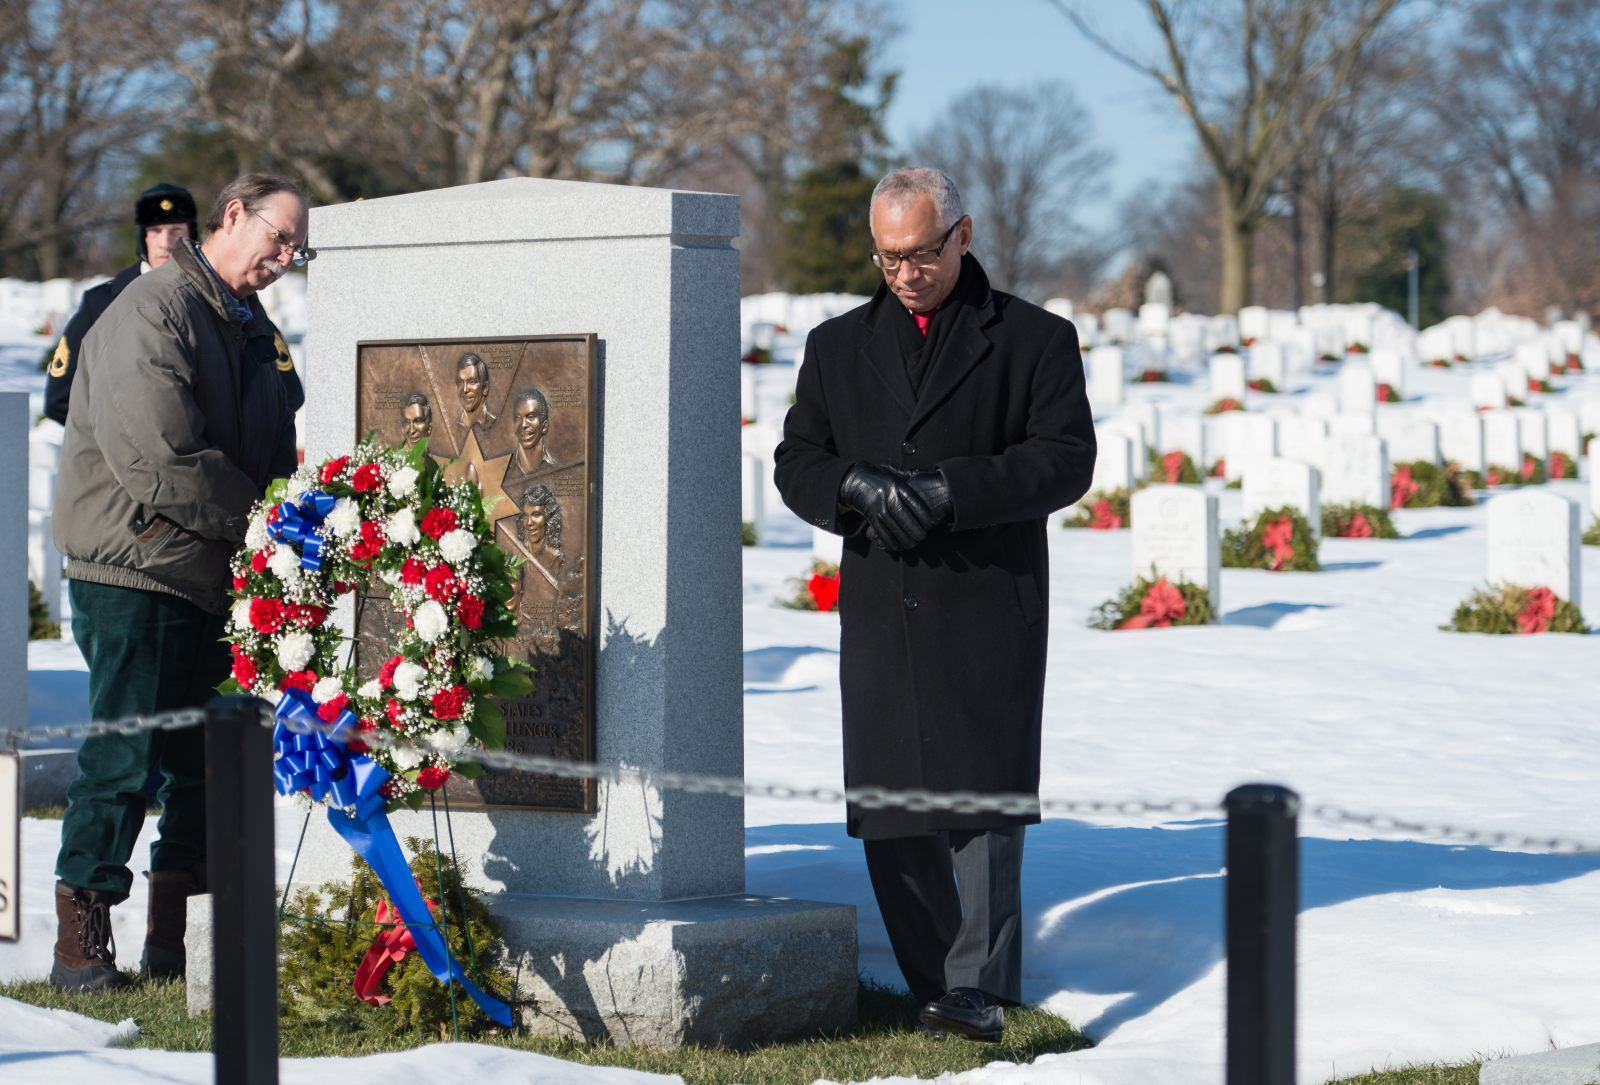 28 janvier - 30ème anniversaire accident Challenger - Remembrance day - Charles Bolden - Memorial - Arlington - NASA - Aubrey Gemignani